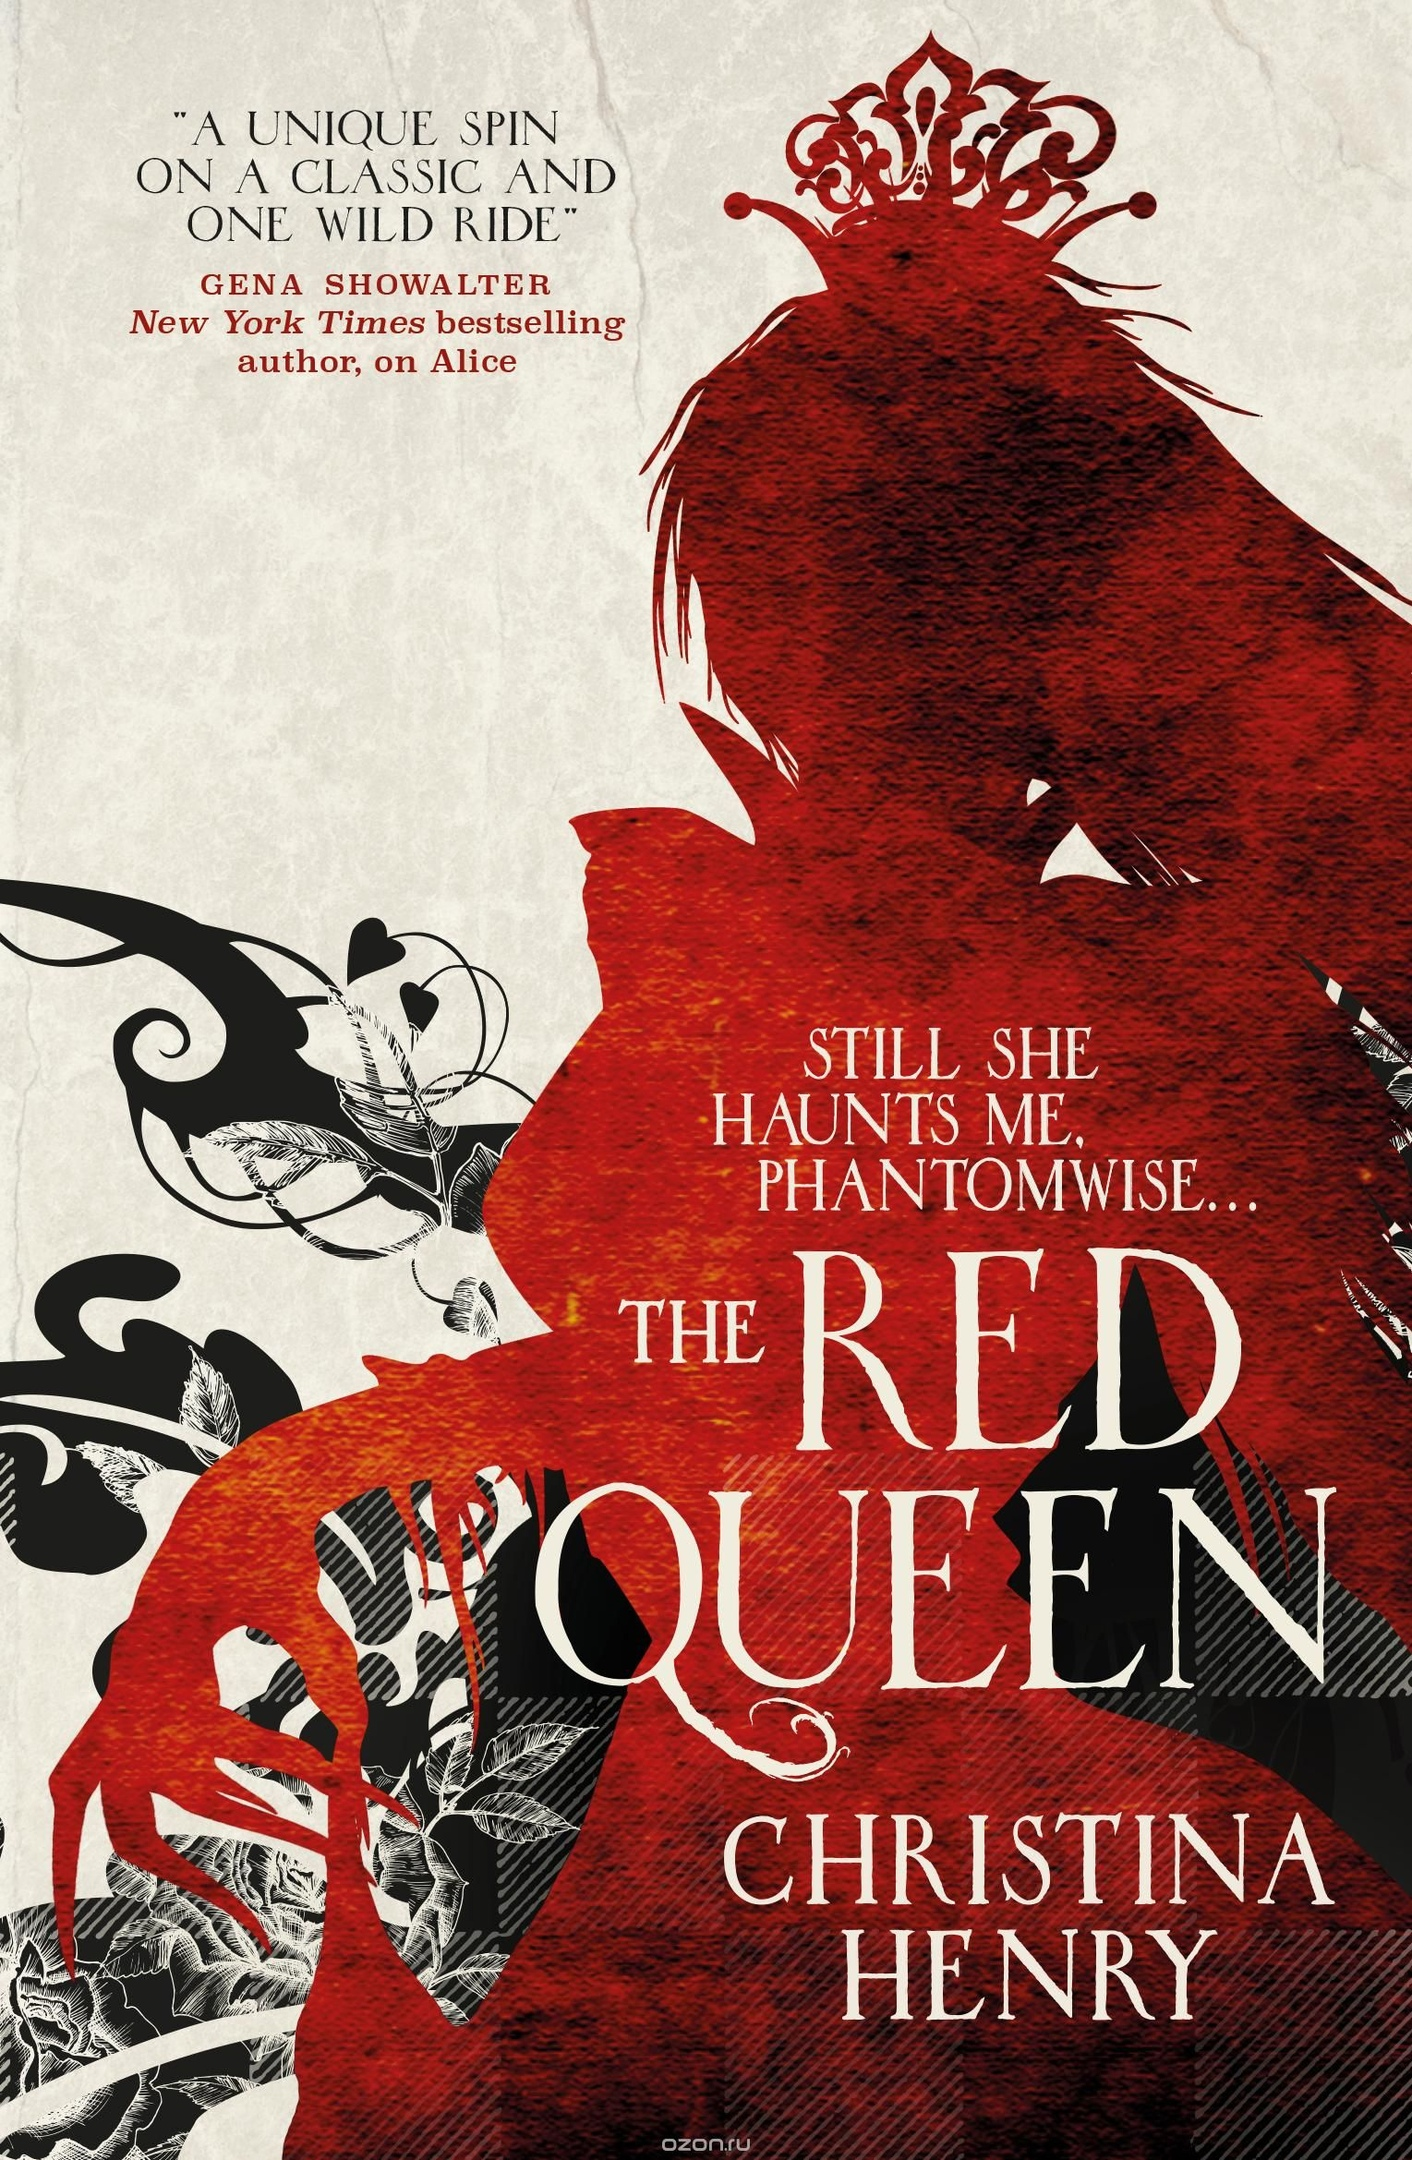 Christina Henry – Red Queen